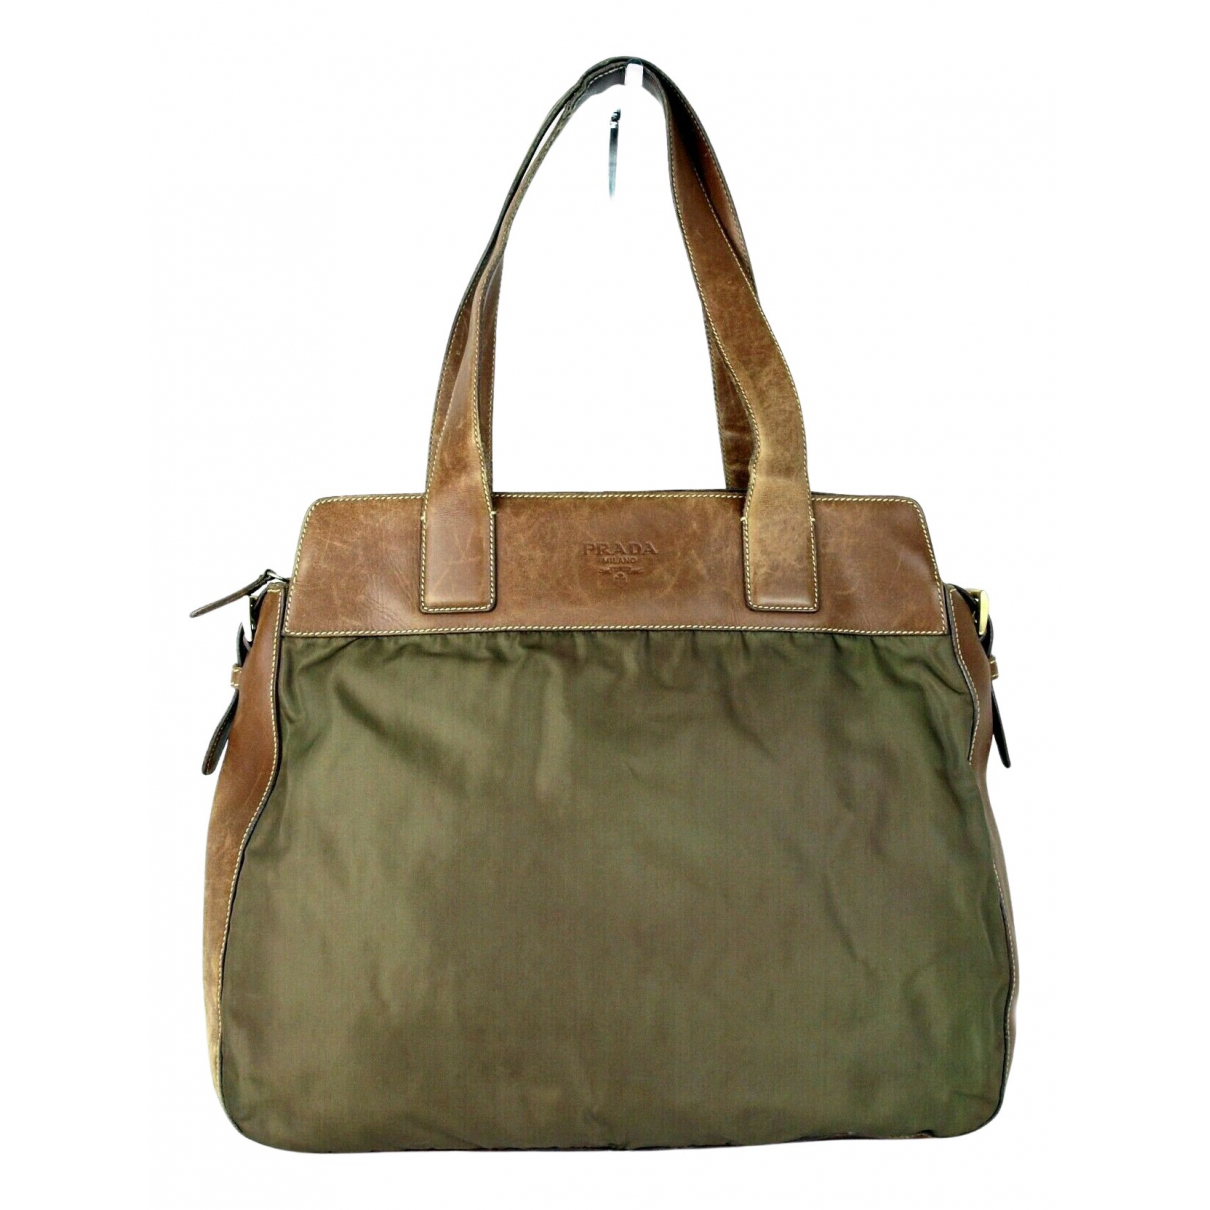 Prada \N Khaki Cloth handbag for Women \N